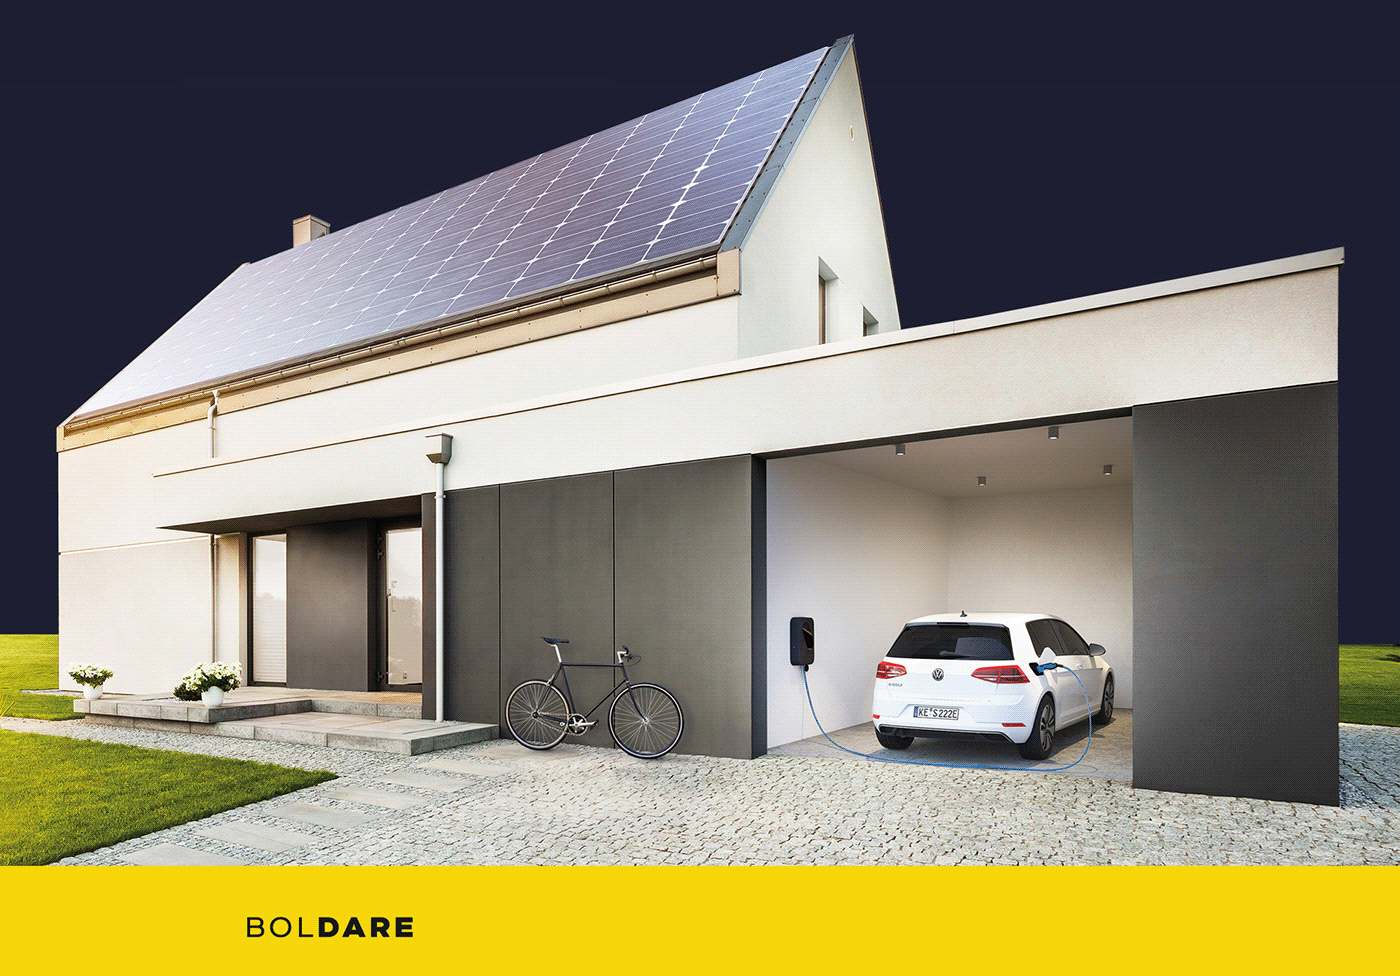 battery renewable energy sources charger clean energy electric cars future solar